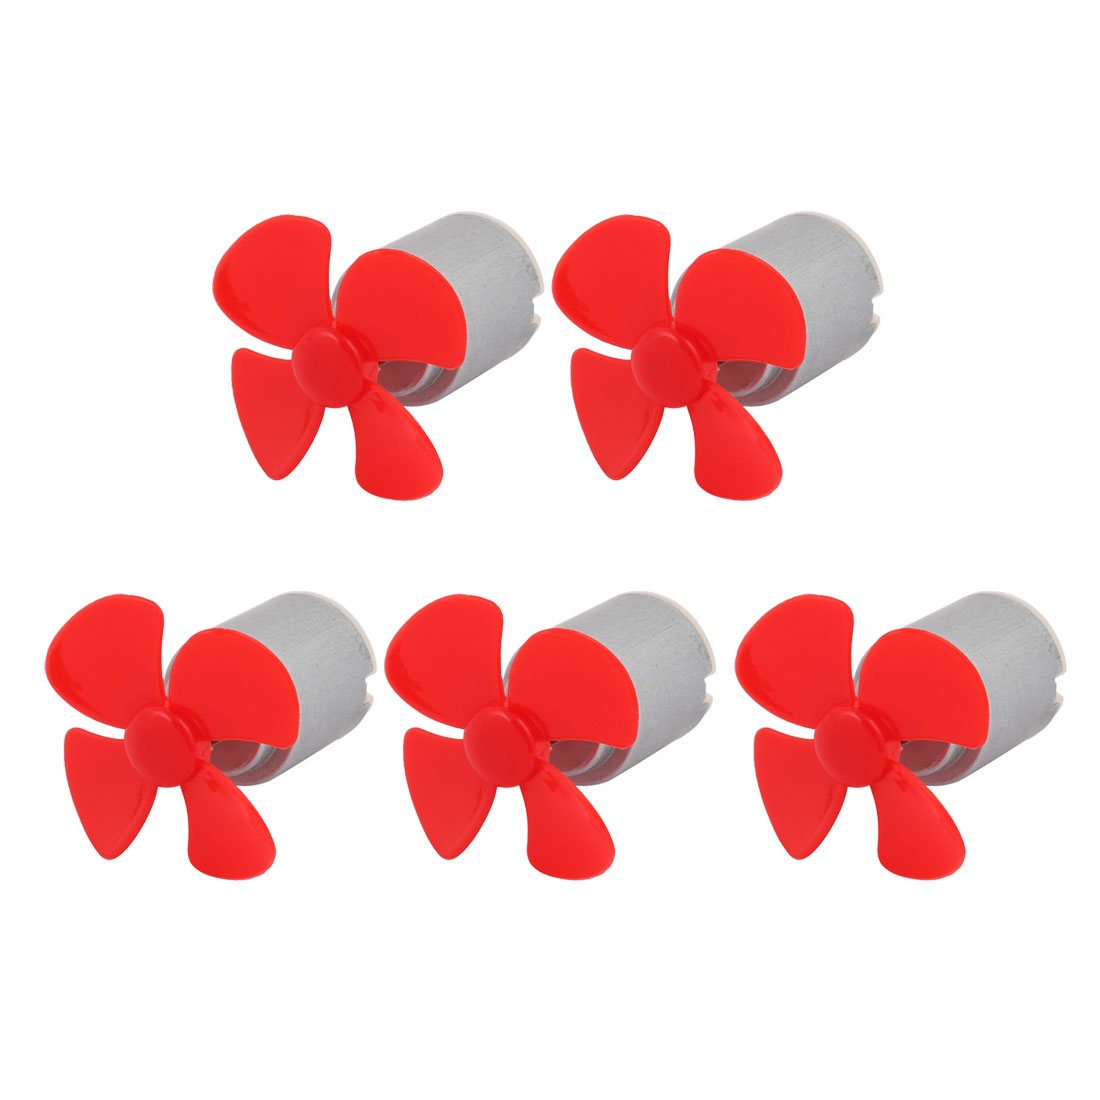 5pcs DC 3V 0.13A 11500RPM Strong Force Motor 4 Vanes 40mm Red Propeller for RC Aircraft